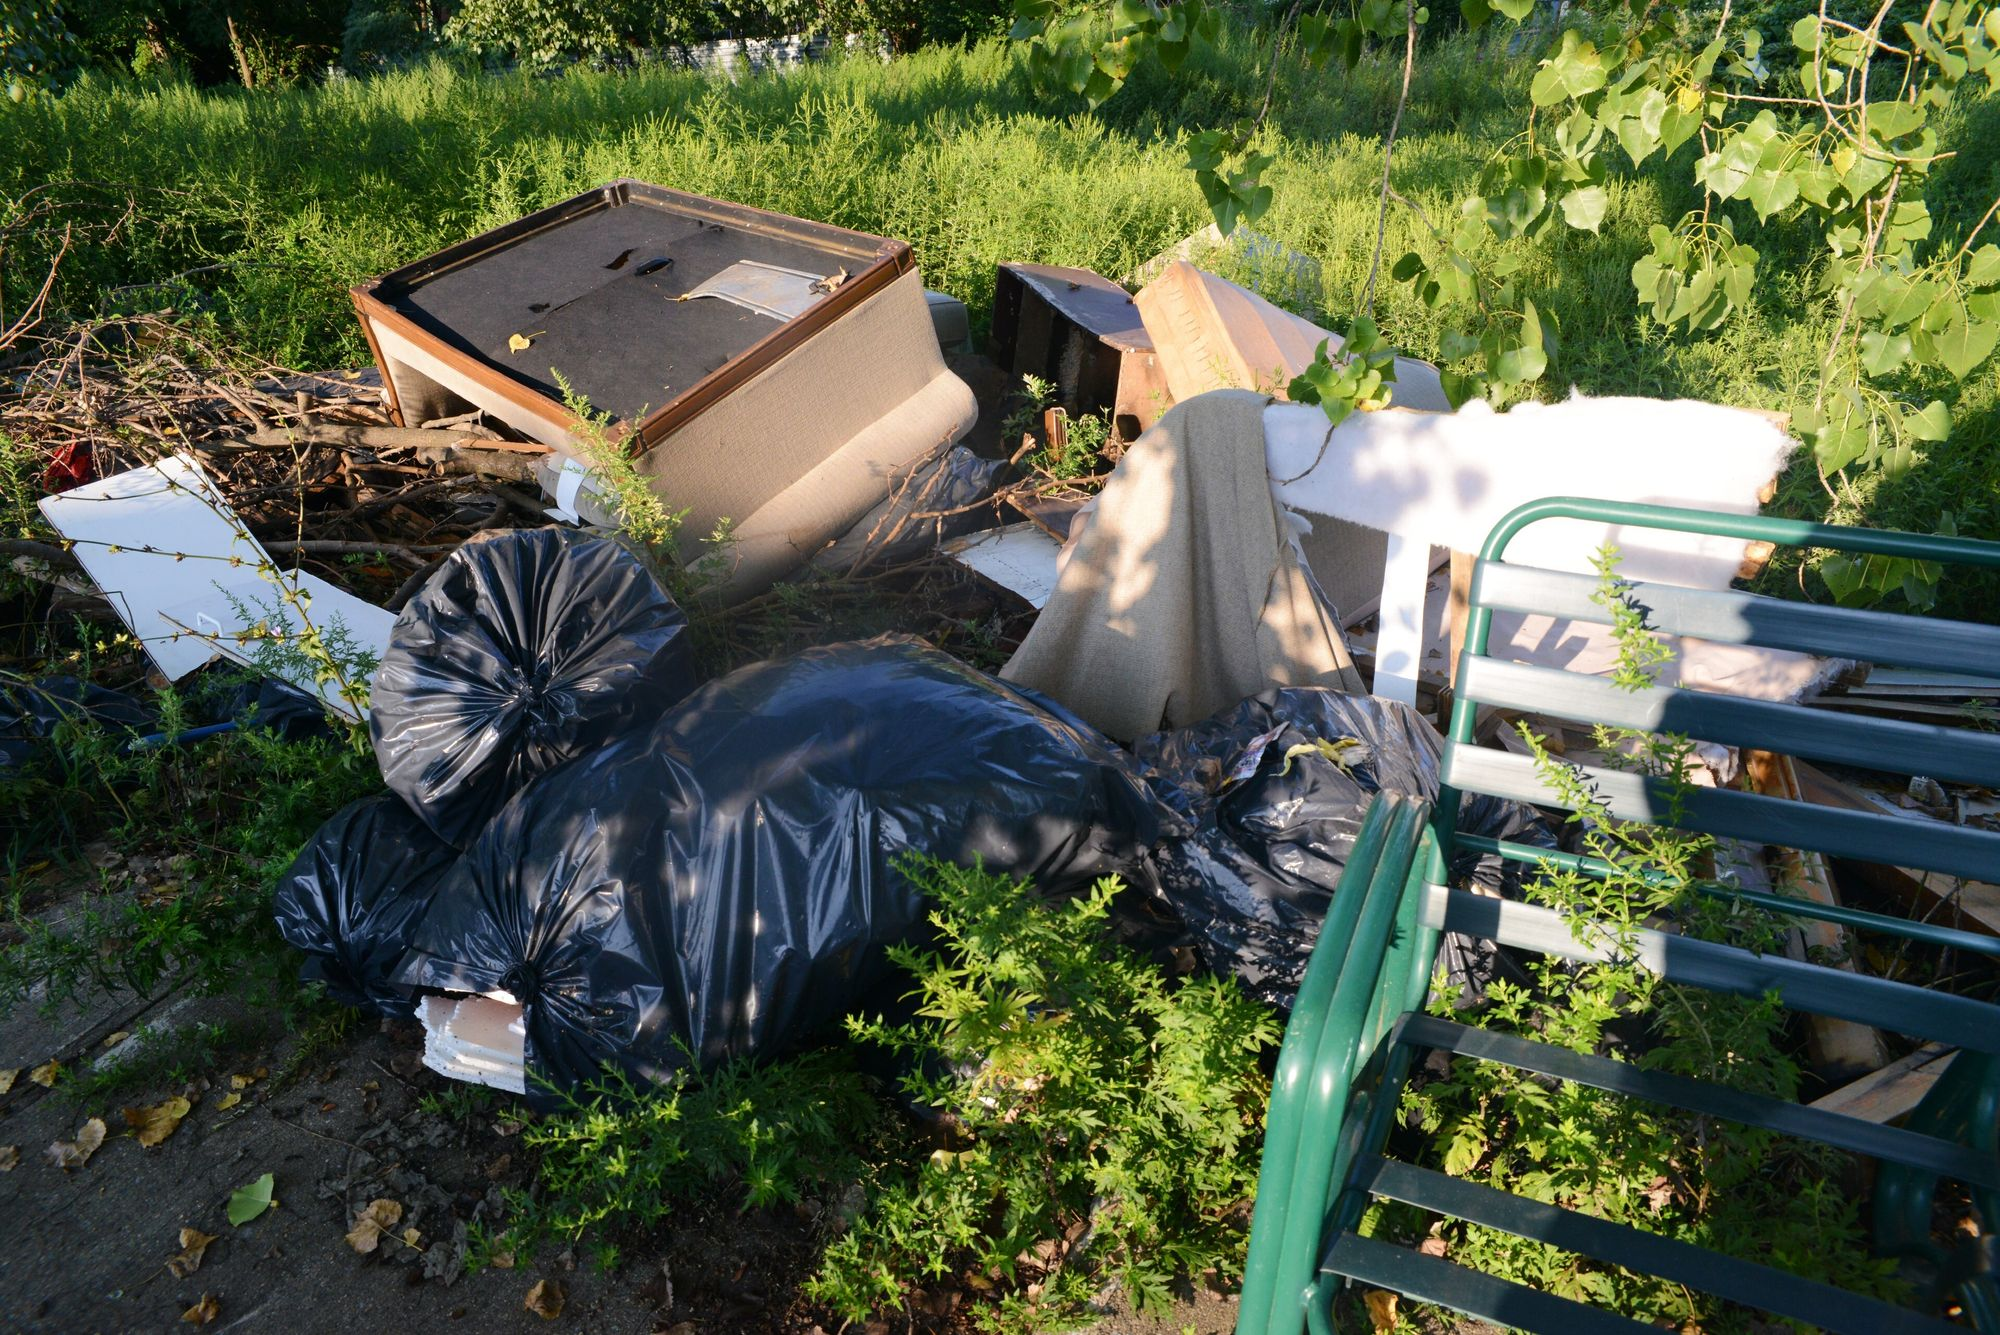 Cameras Capture Illegal Dumping as Sanitation Tries to Clean Up Increasingly Dirty City